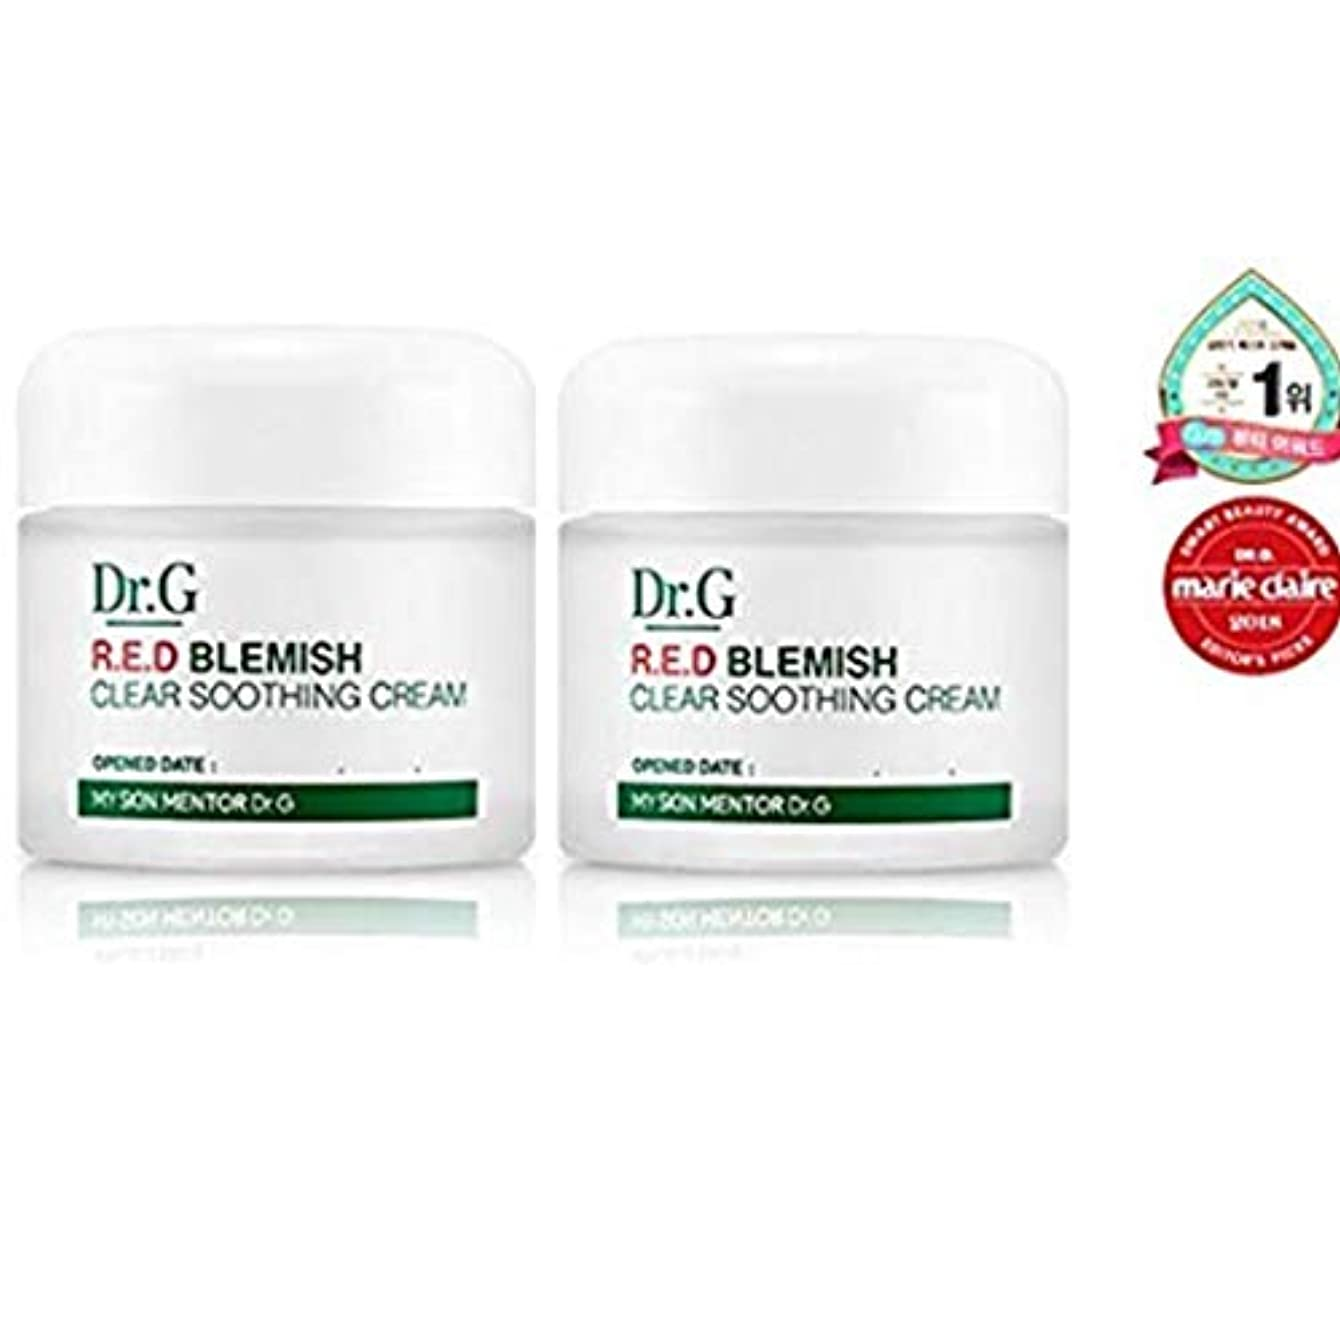 [Dr.Gドクタージー]レッド ブレミッシュ クリア スージング クリーム 70ml X 2EA / Dr.G RED BLEMISH CLEAR SOOTHING CREAM 70ml X 2EA [並行輸入品]